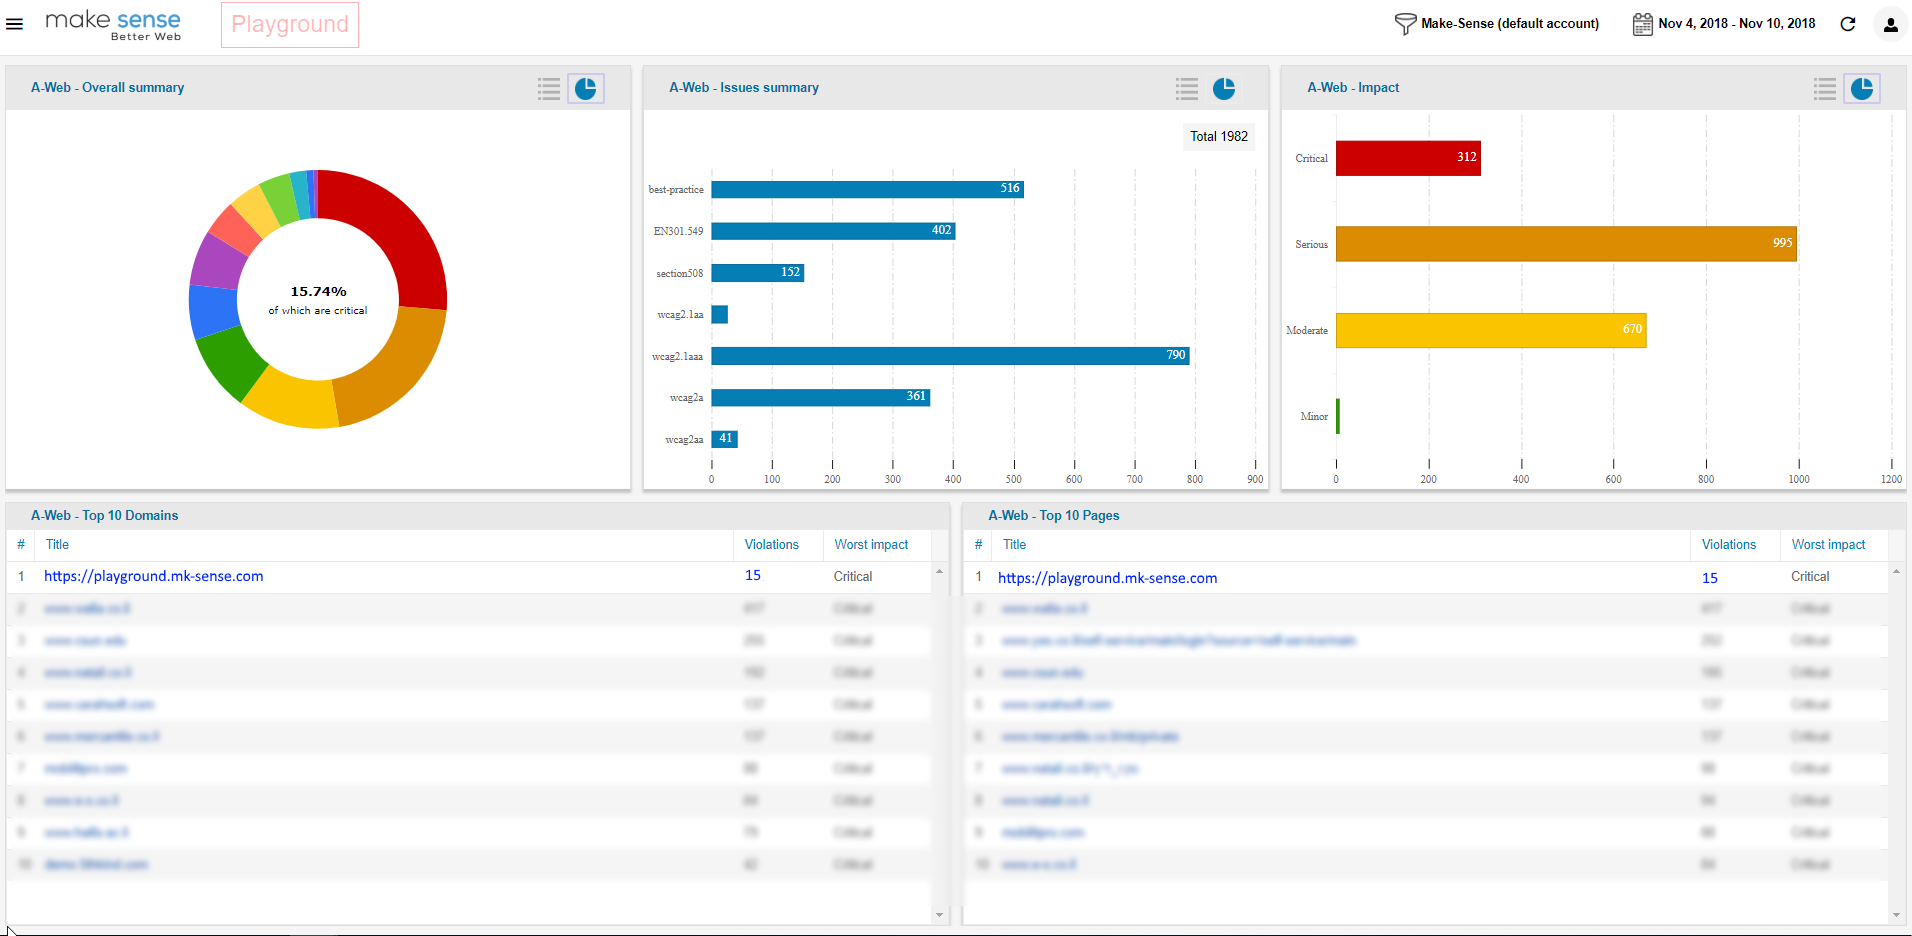 main dashboard charts and tables. Showing all domains and issues